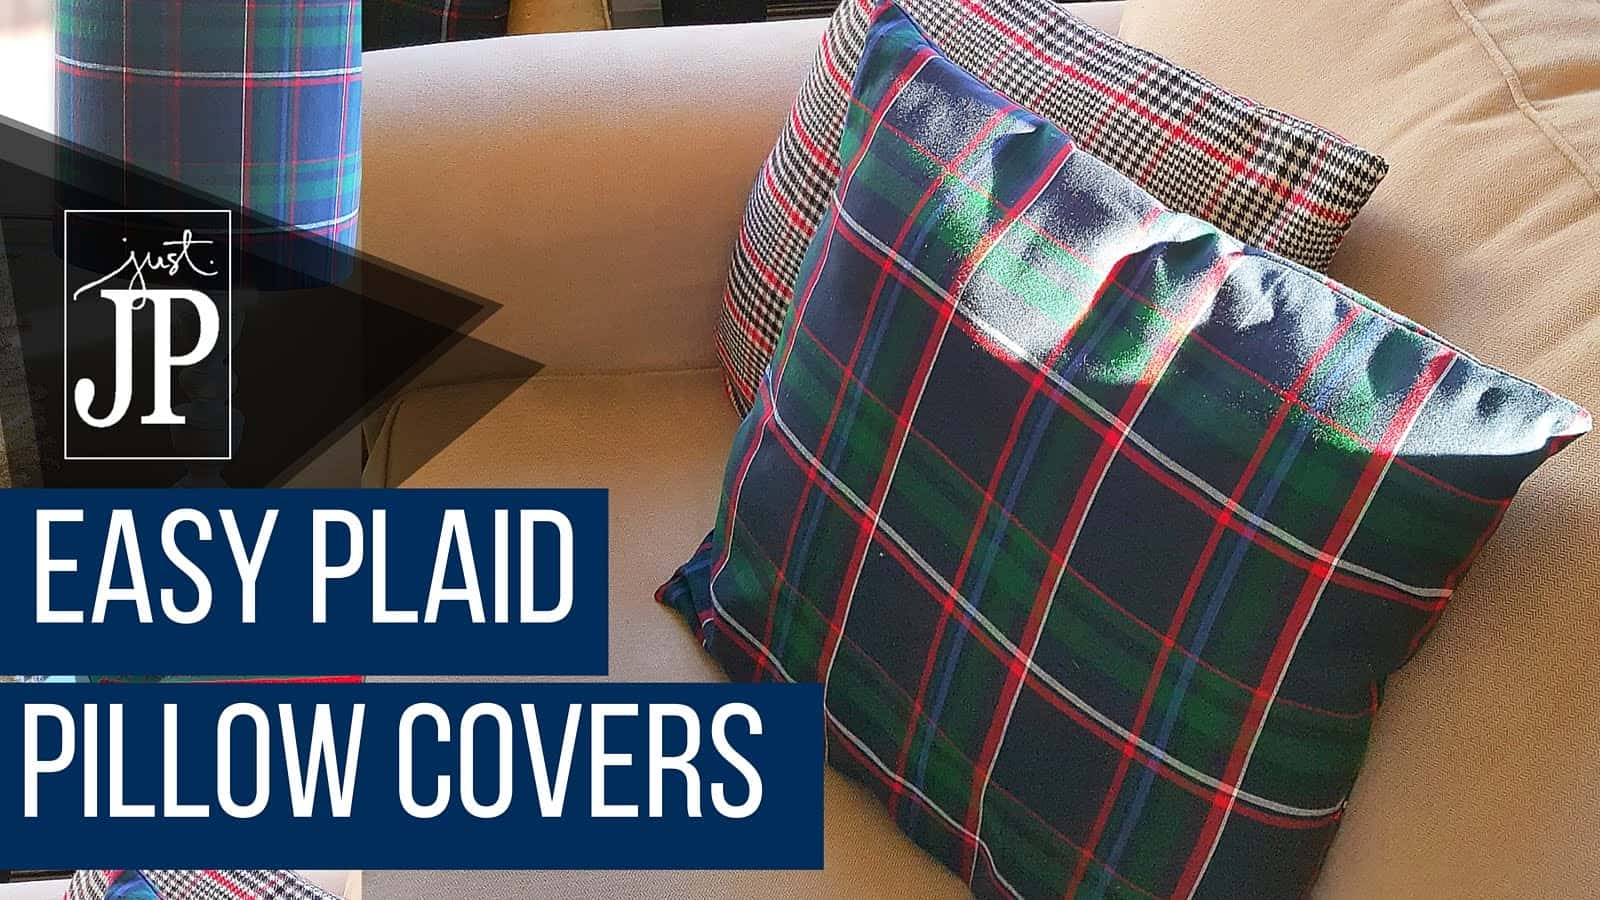 Easy plaid pillow covers